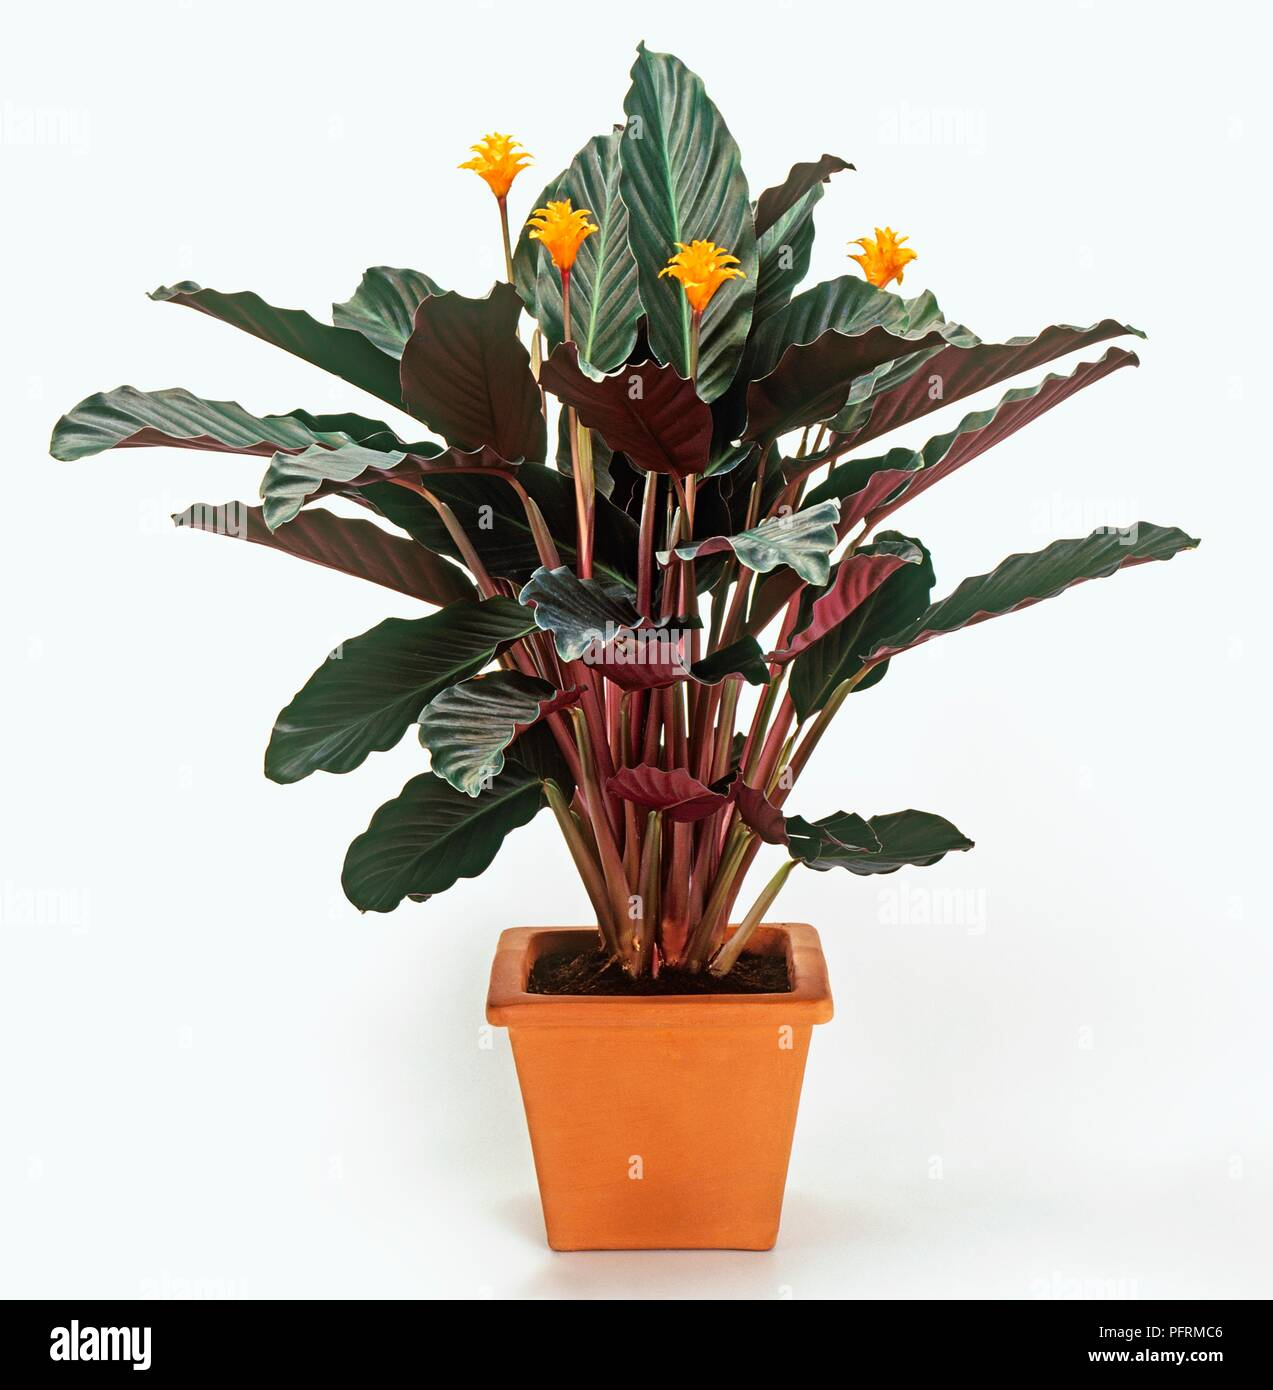 Calathea crocata (Calathea), houseplant with orange flowers and red on red and green ground cover, red and green ornamental grass, red and green leaf plant,